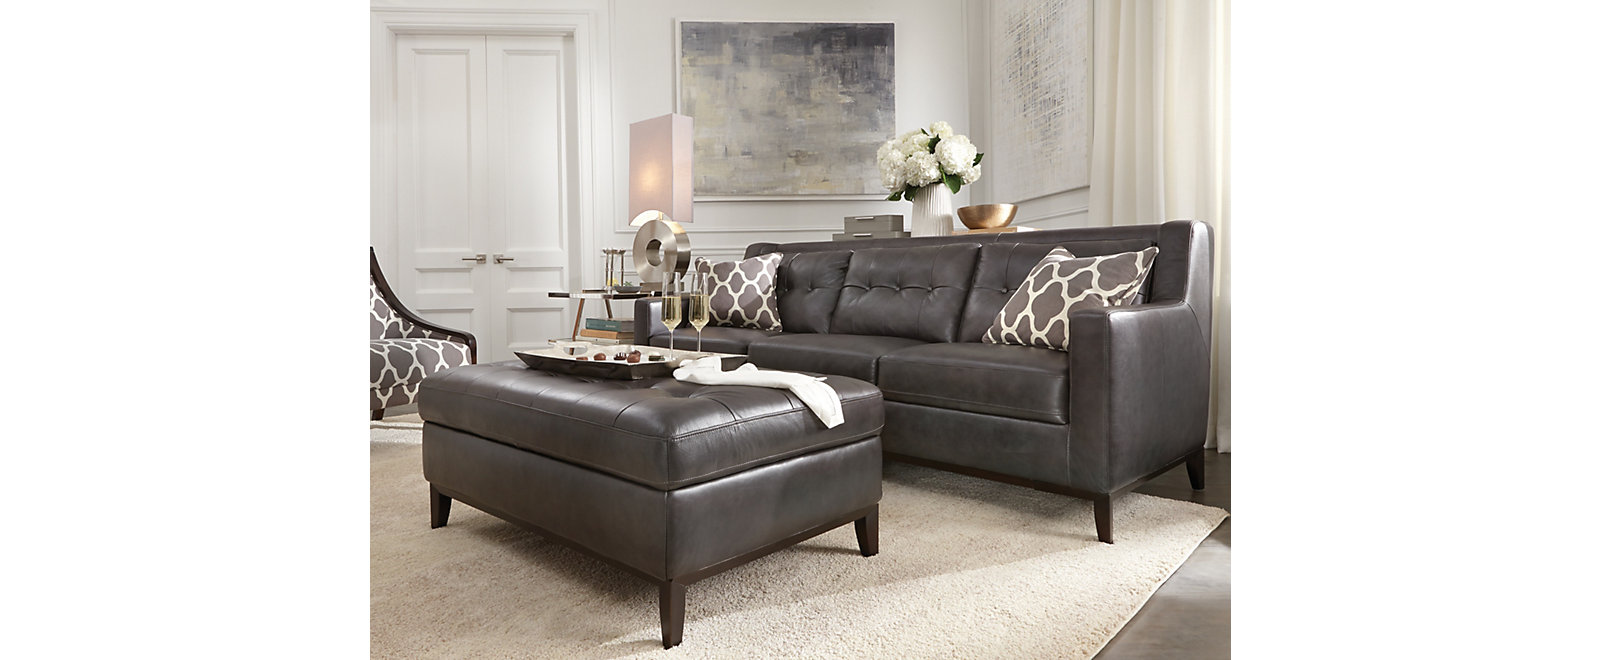 Grigio Collection, , large